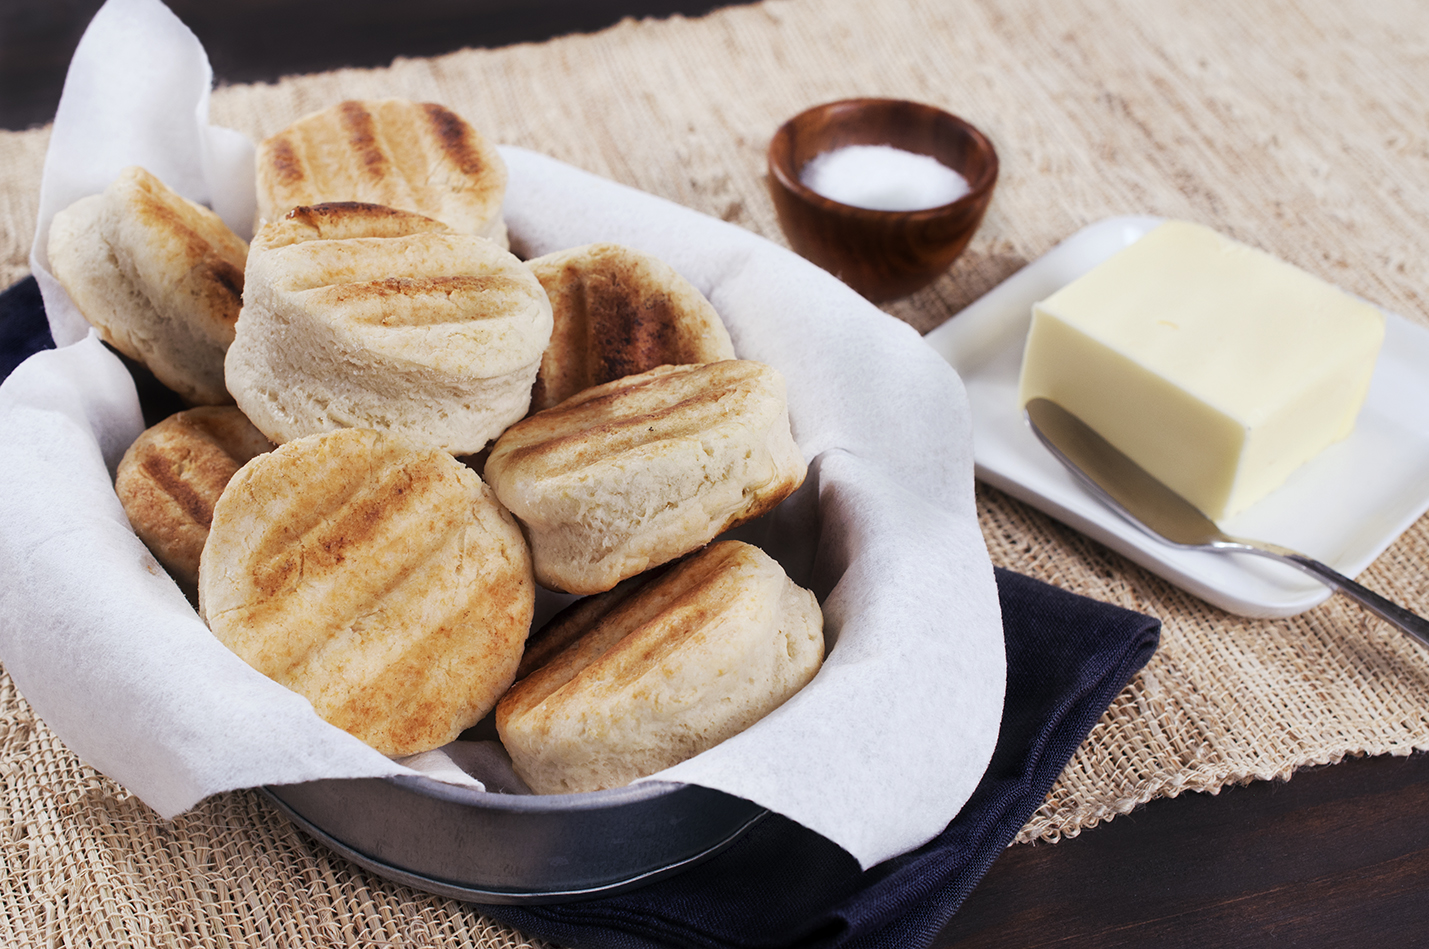 Grilled Biscuits